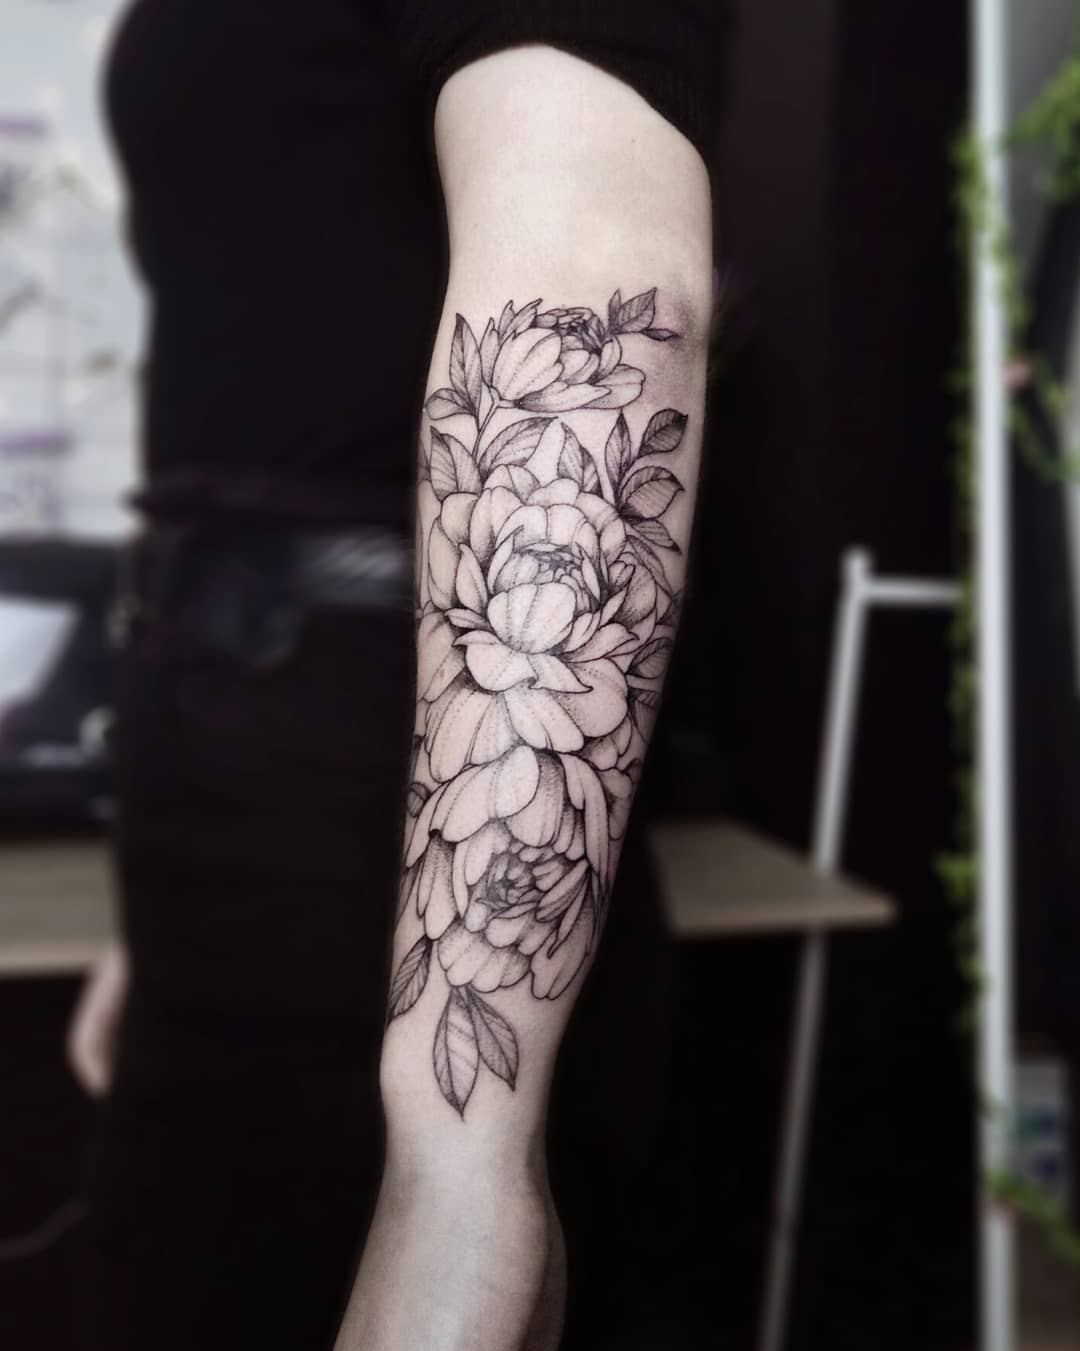 Image of forearm Peony Tattoo design